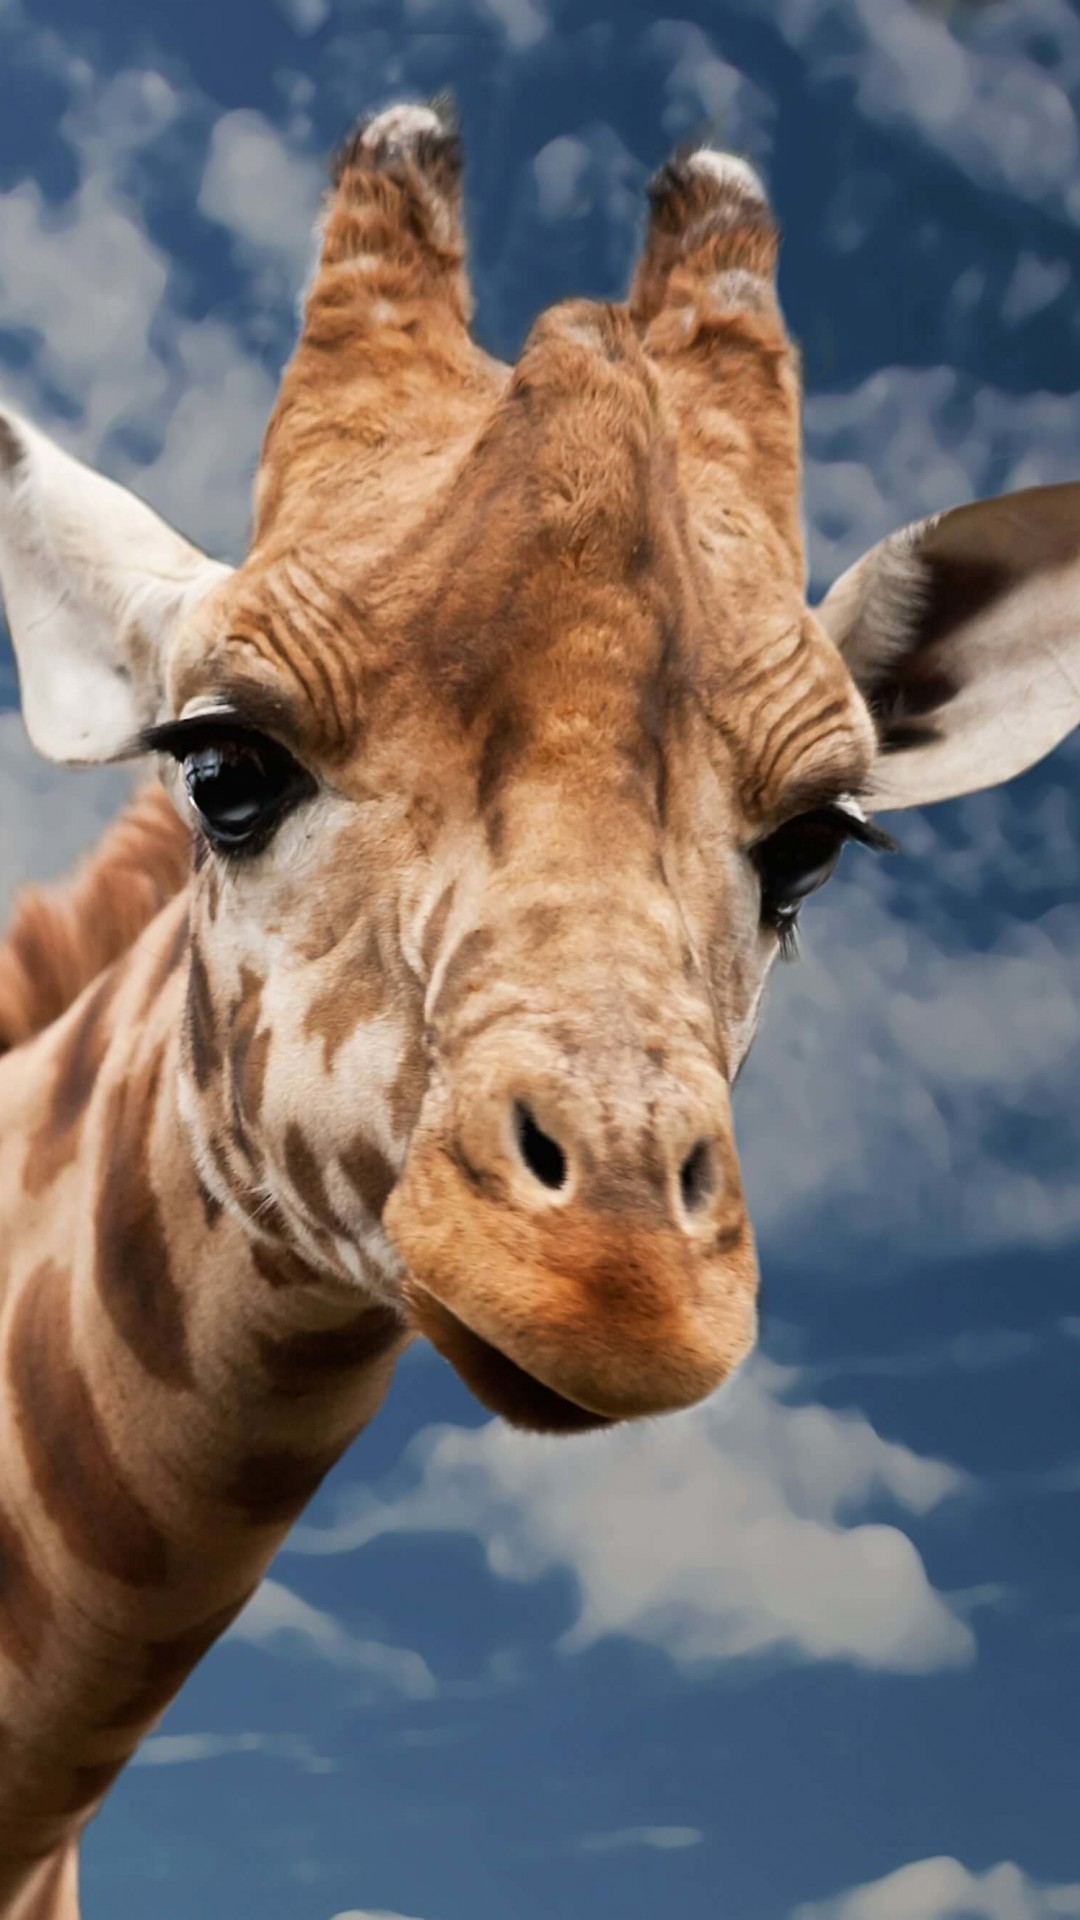 Funny Giraffe Wallpaper for SAMSUNG Galaxy S4